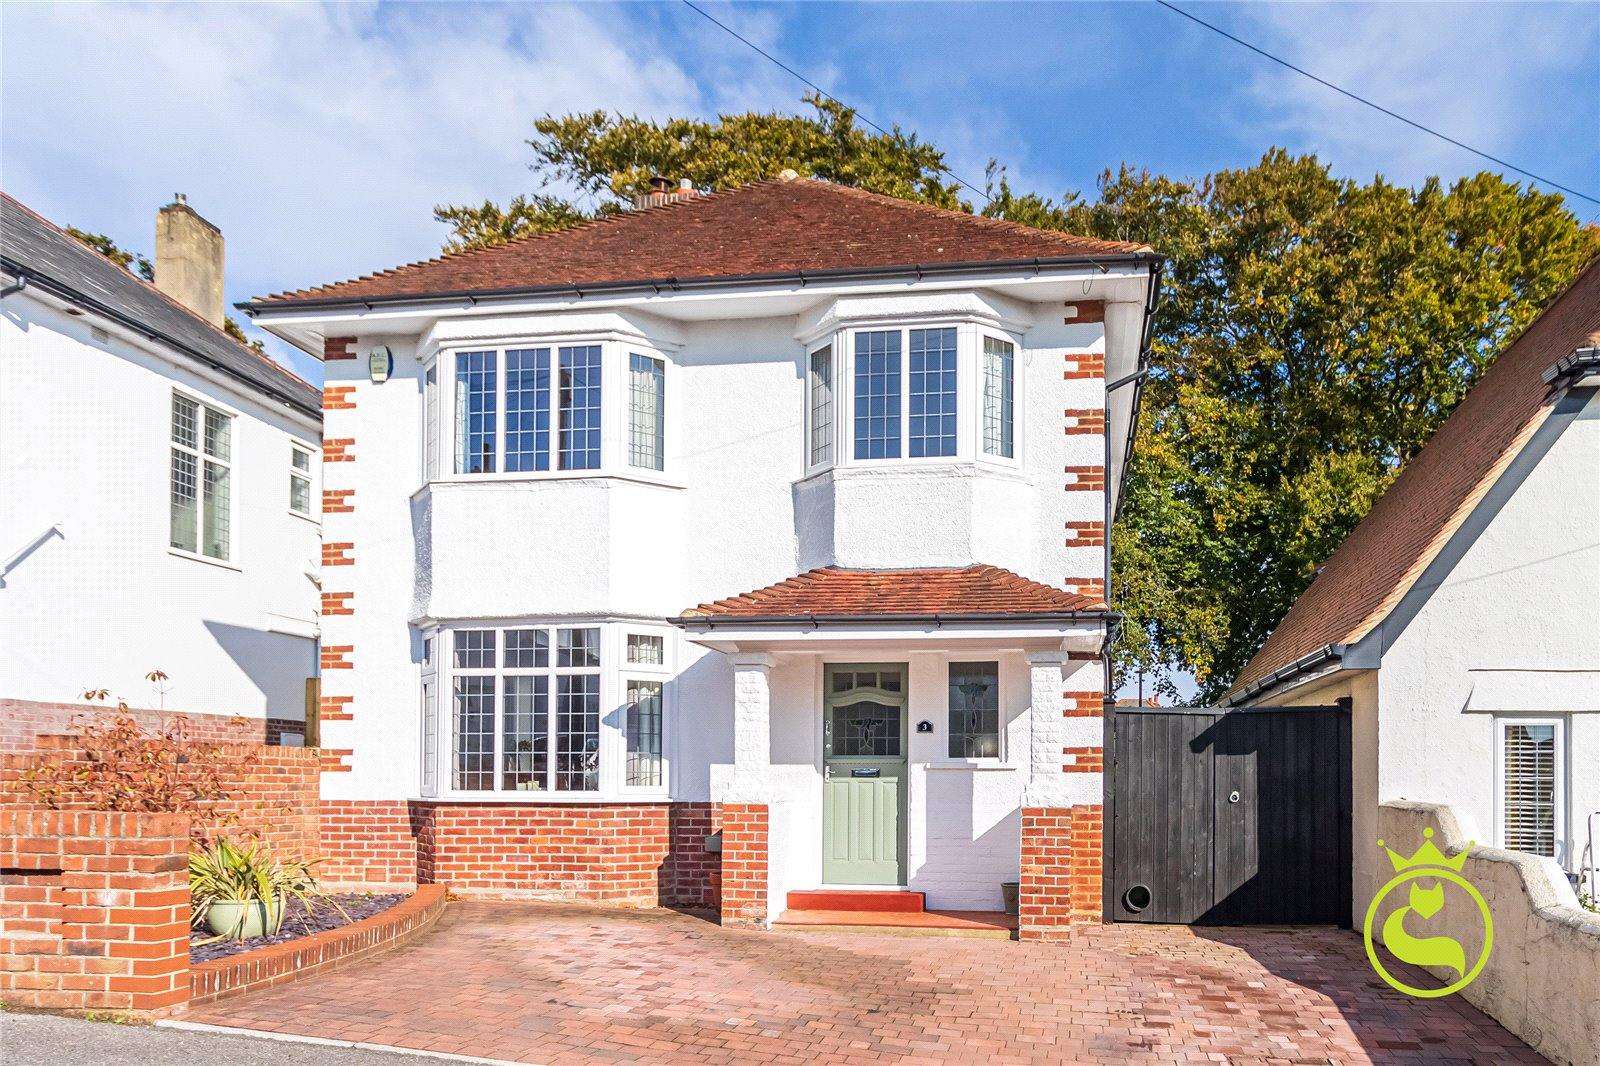 3 bed house for sale in Mansfield Avenue, Lower Parkstone, BH14